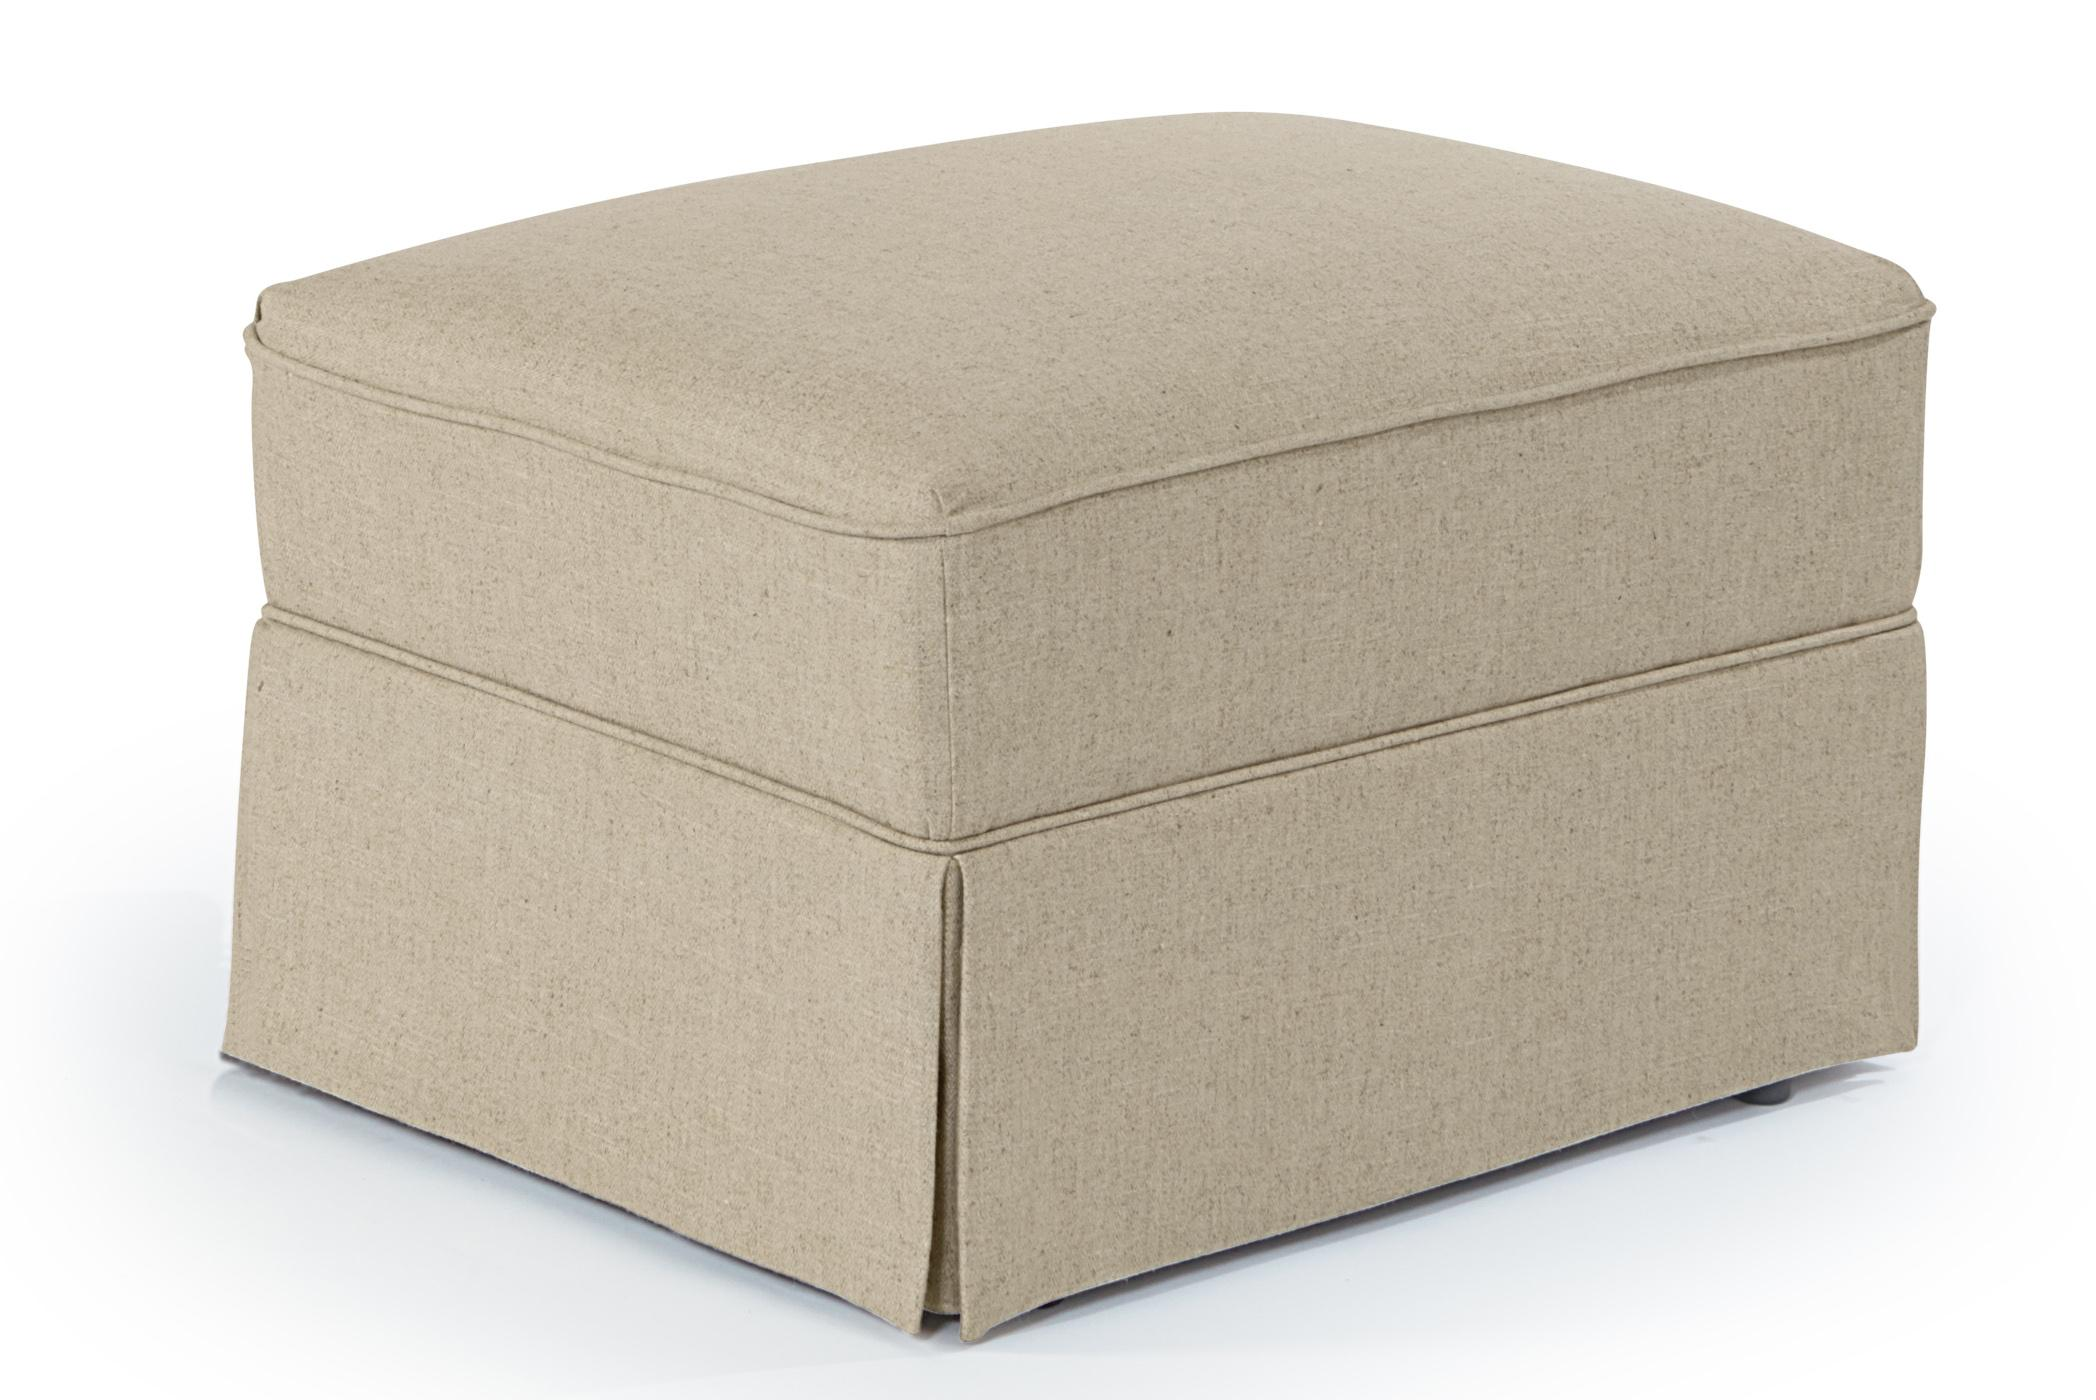 Best Home Furnishings Ottomans Skirted Glide Ottoman - Item Number: 0056